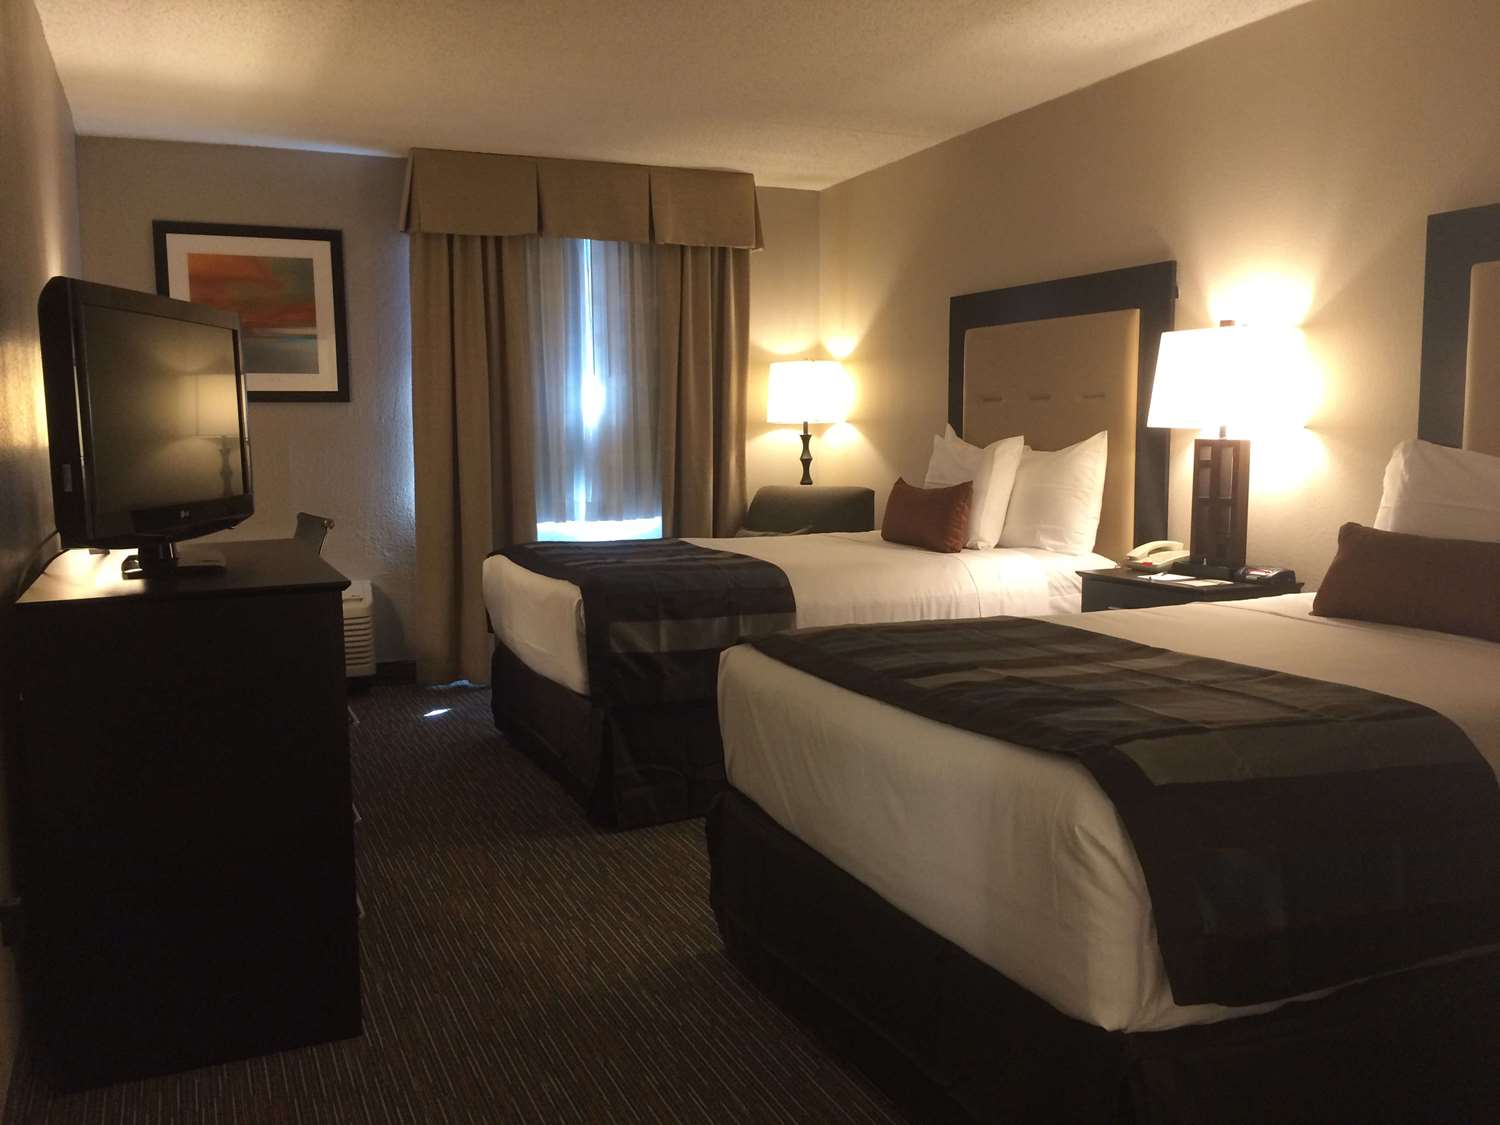 Room - Wingate by Wyndham Hotel Egg Harbor Township